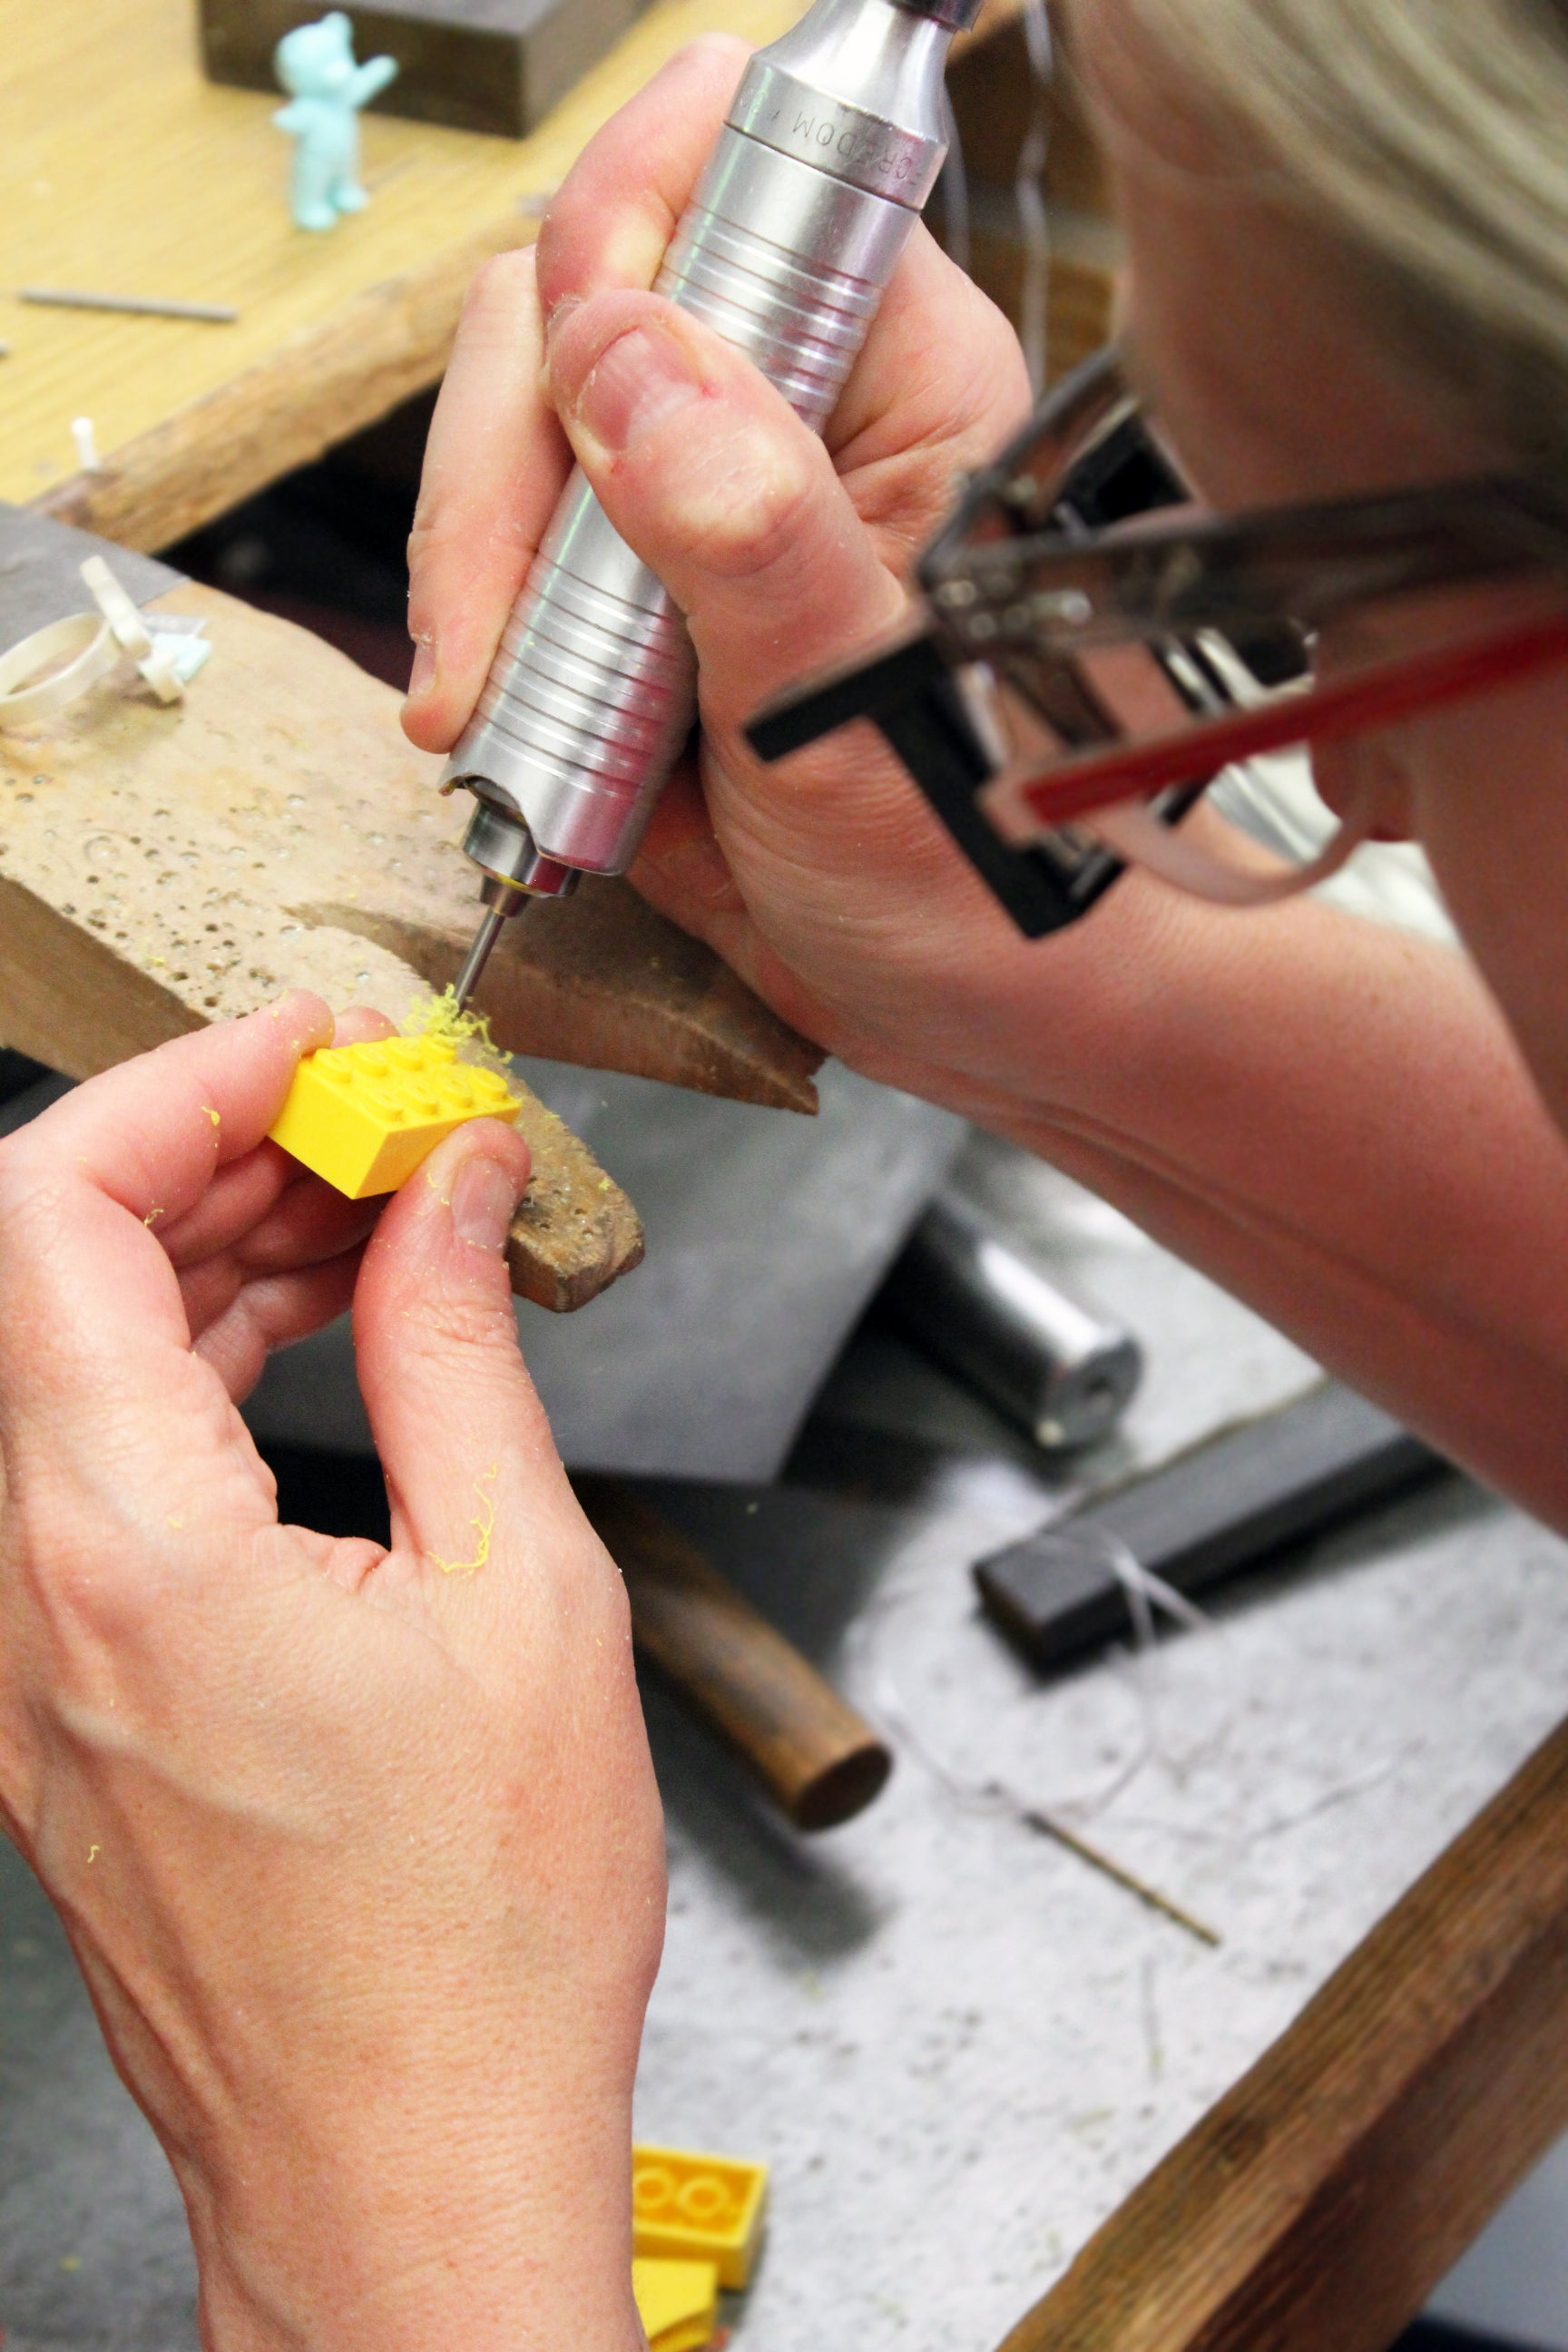 LEGO Designer drilling into a LEGO fabricated jewelry from LEGO